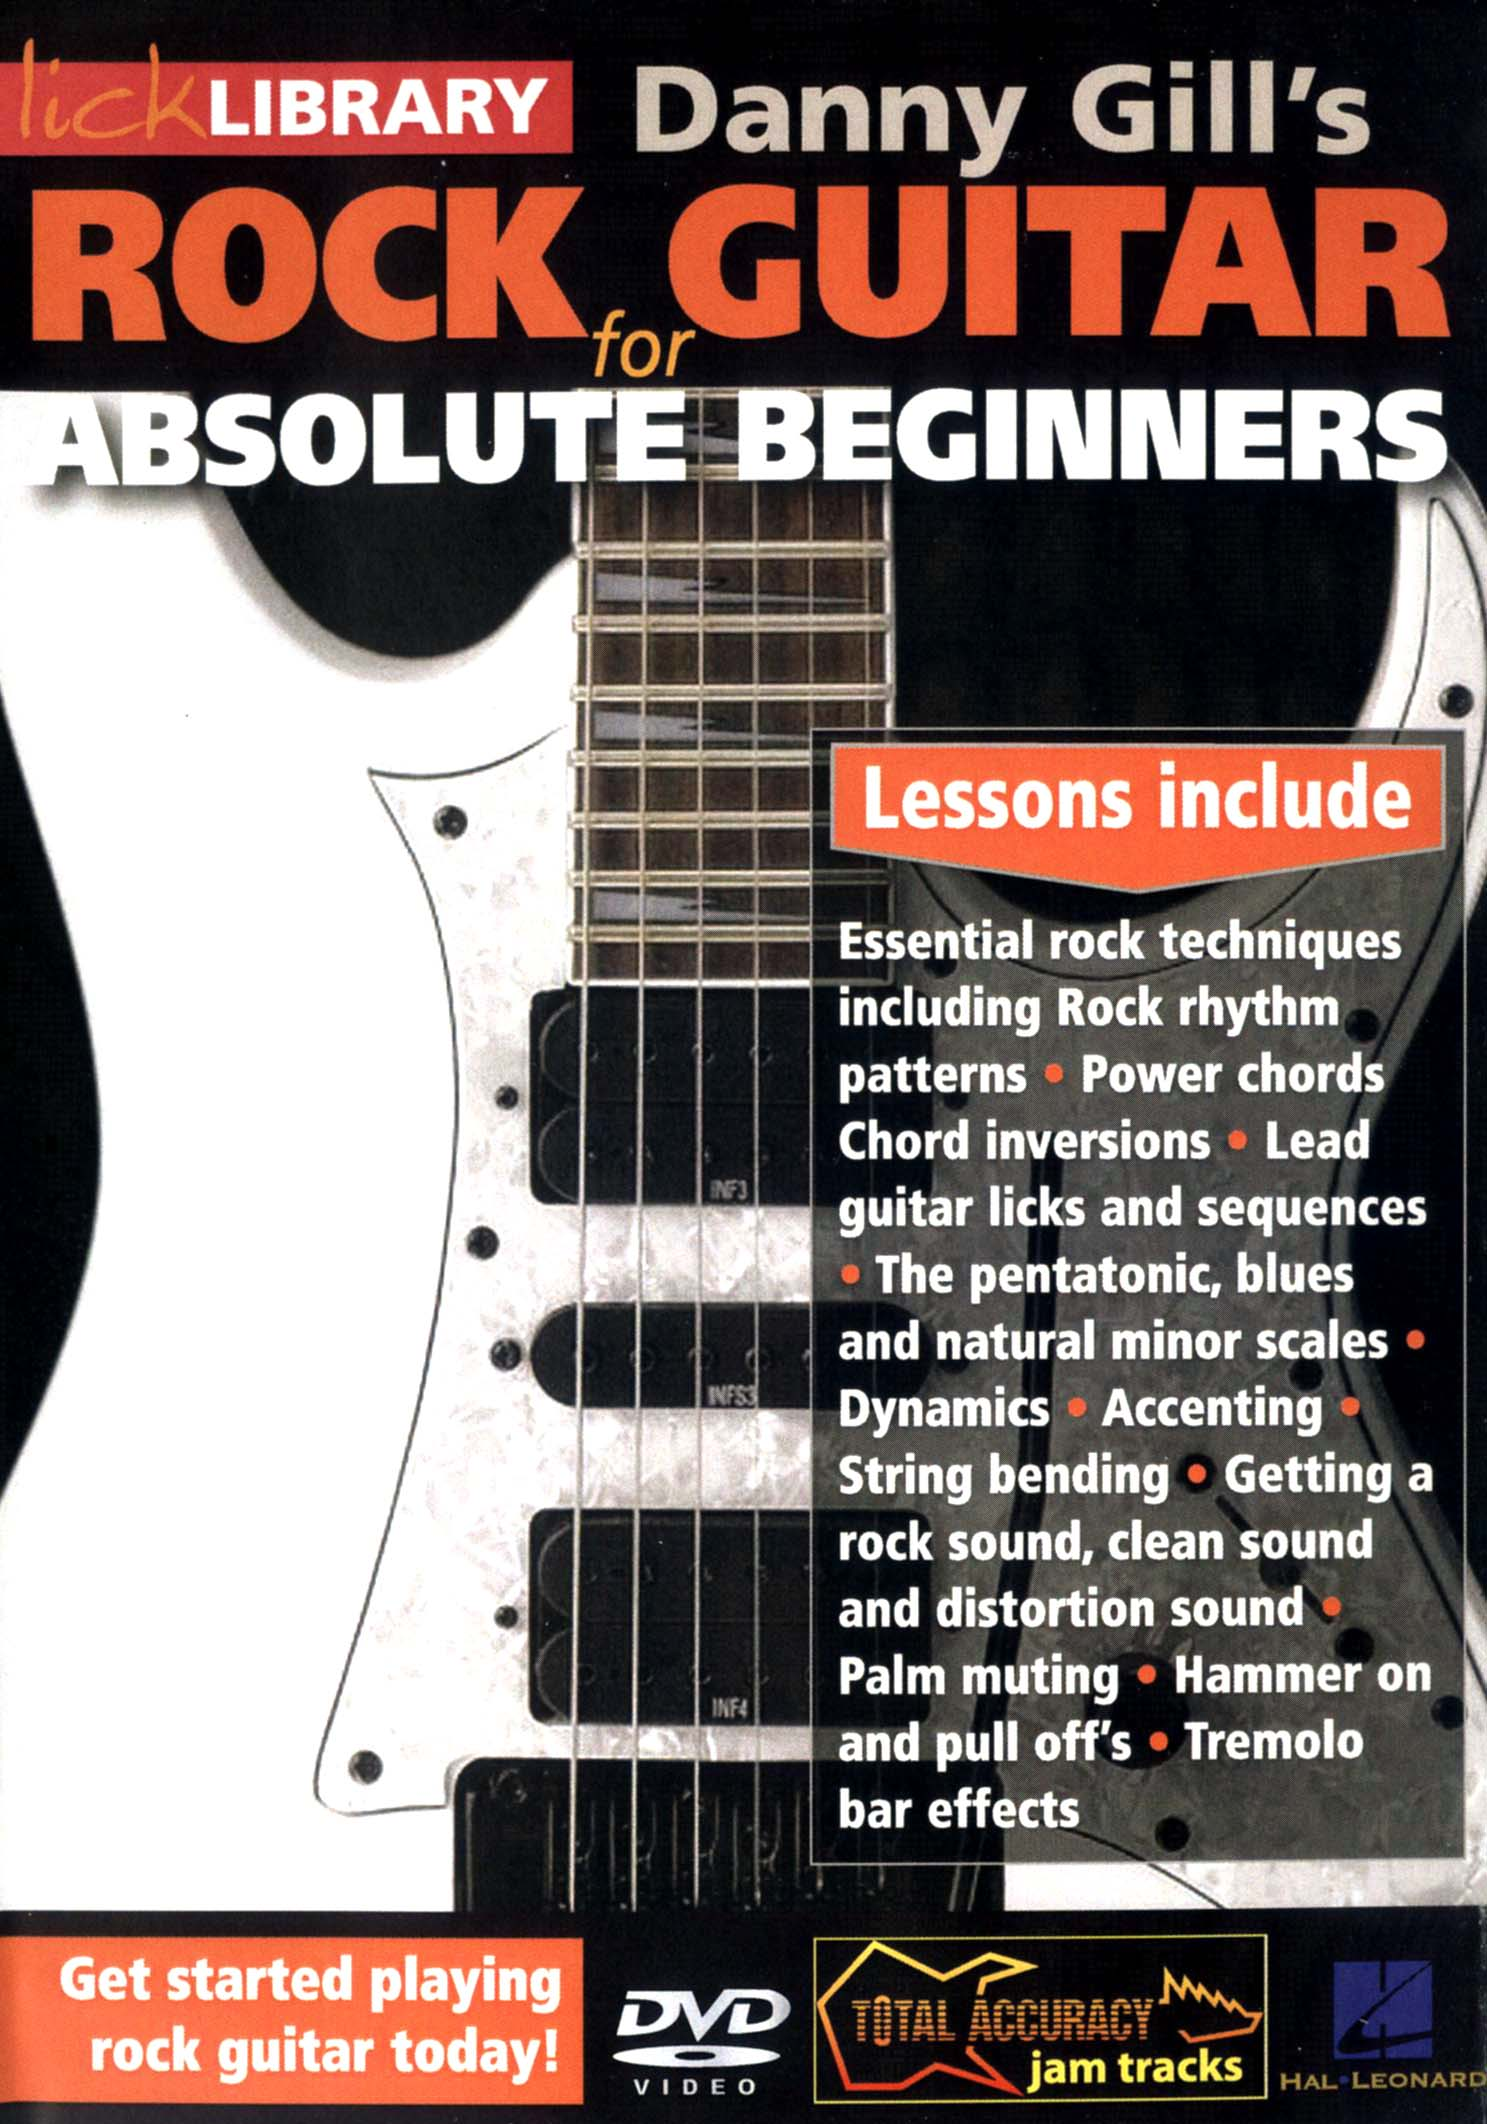 Lick Library: Danny Gill's Rock Guitar for Absolute Beginners